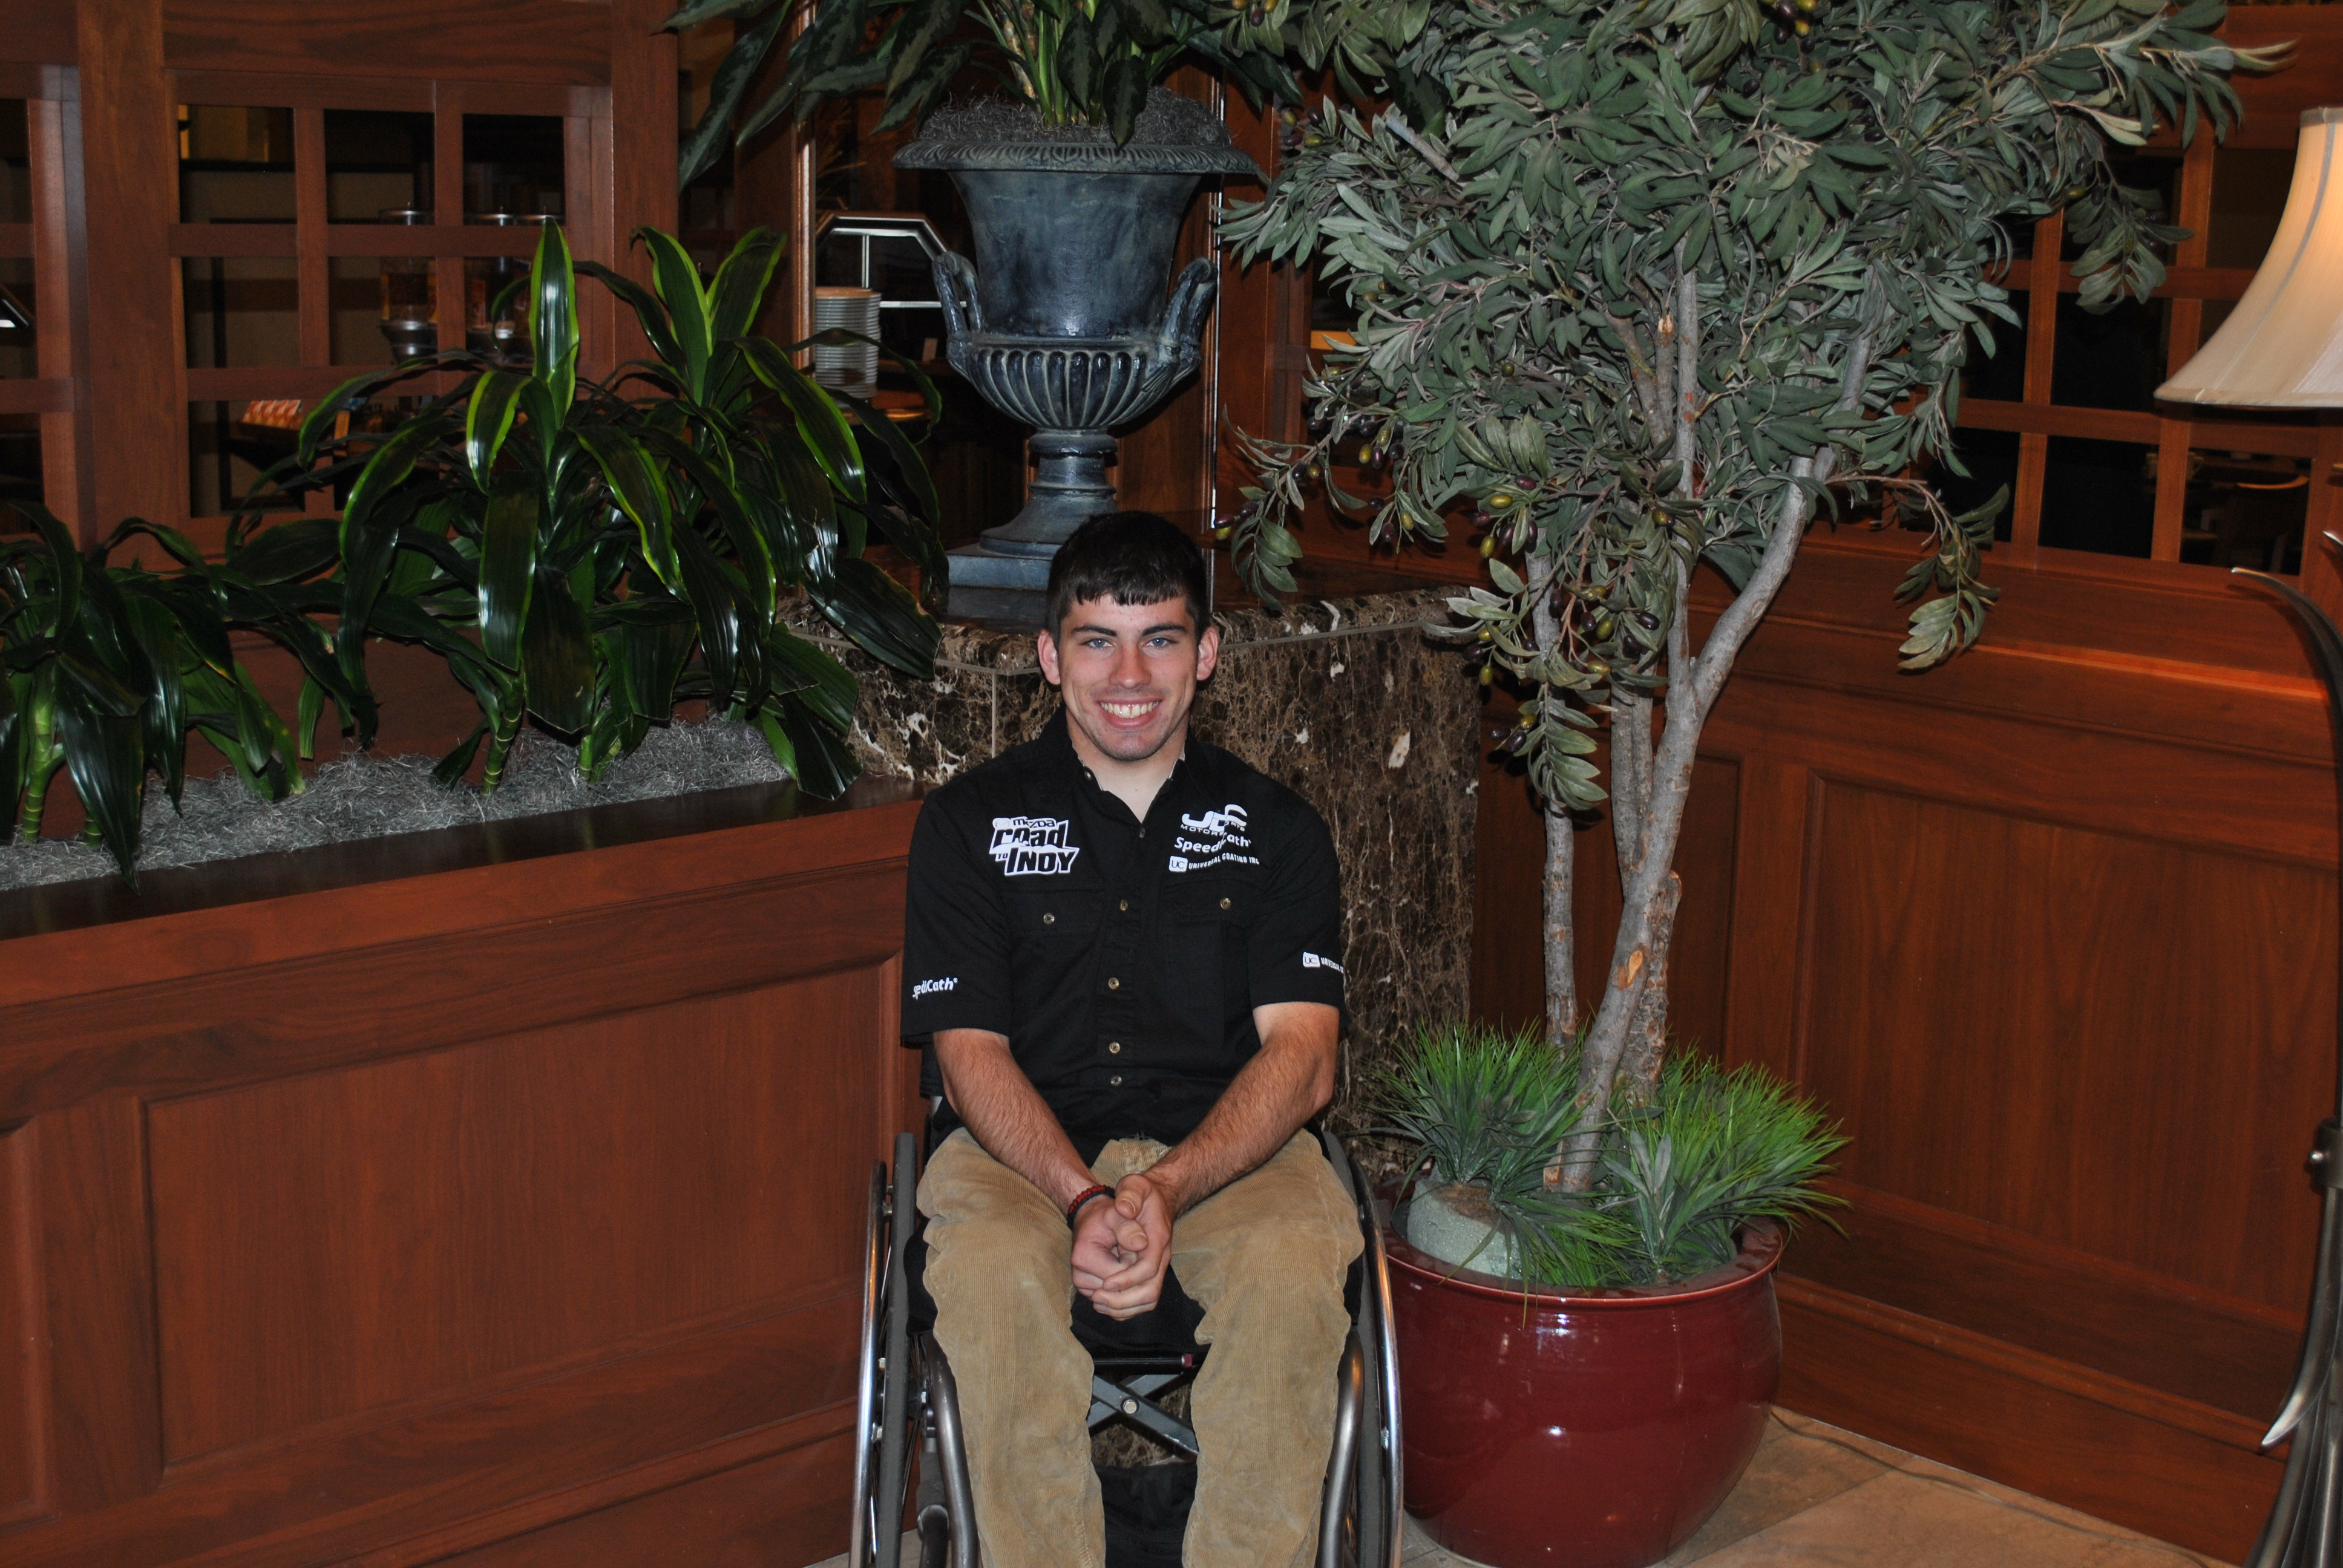 Coloplast North America has announced a corporate sponsorship of Michael Johnson, formula racing's first paralyzed driver.